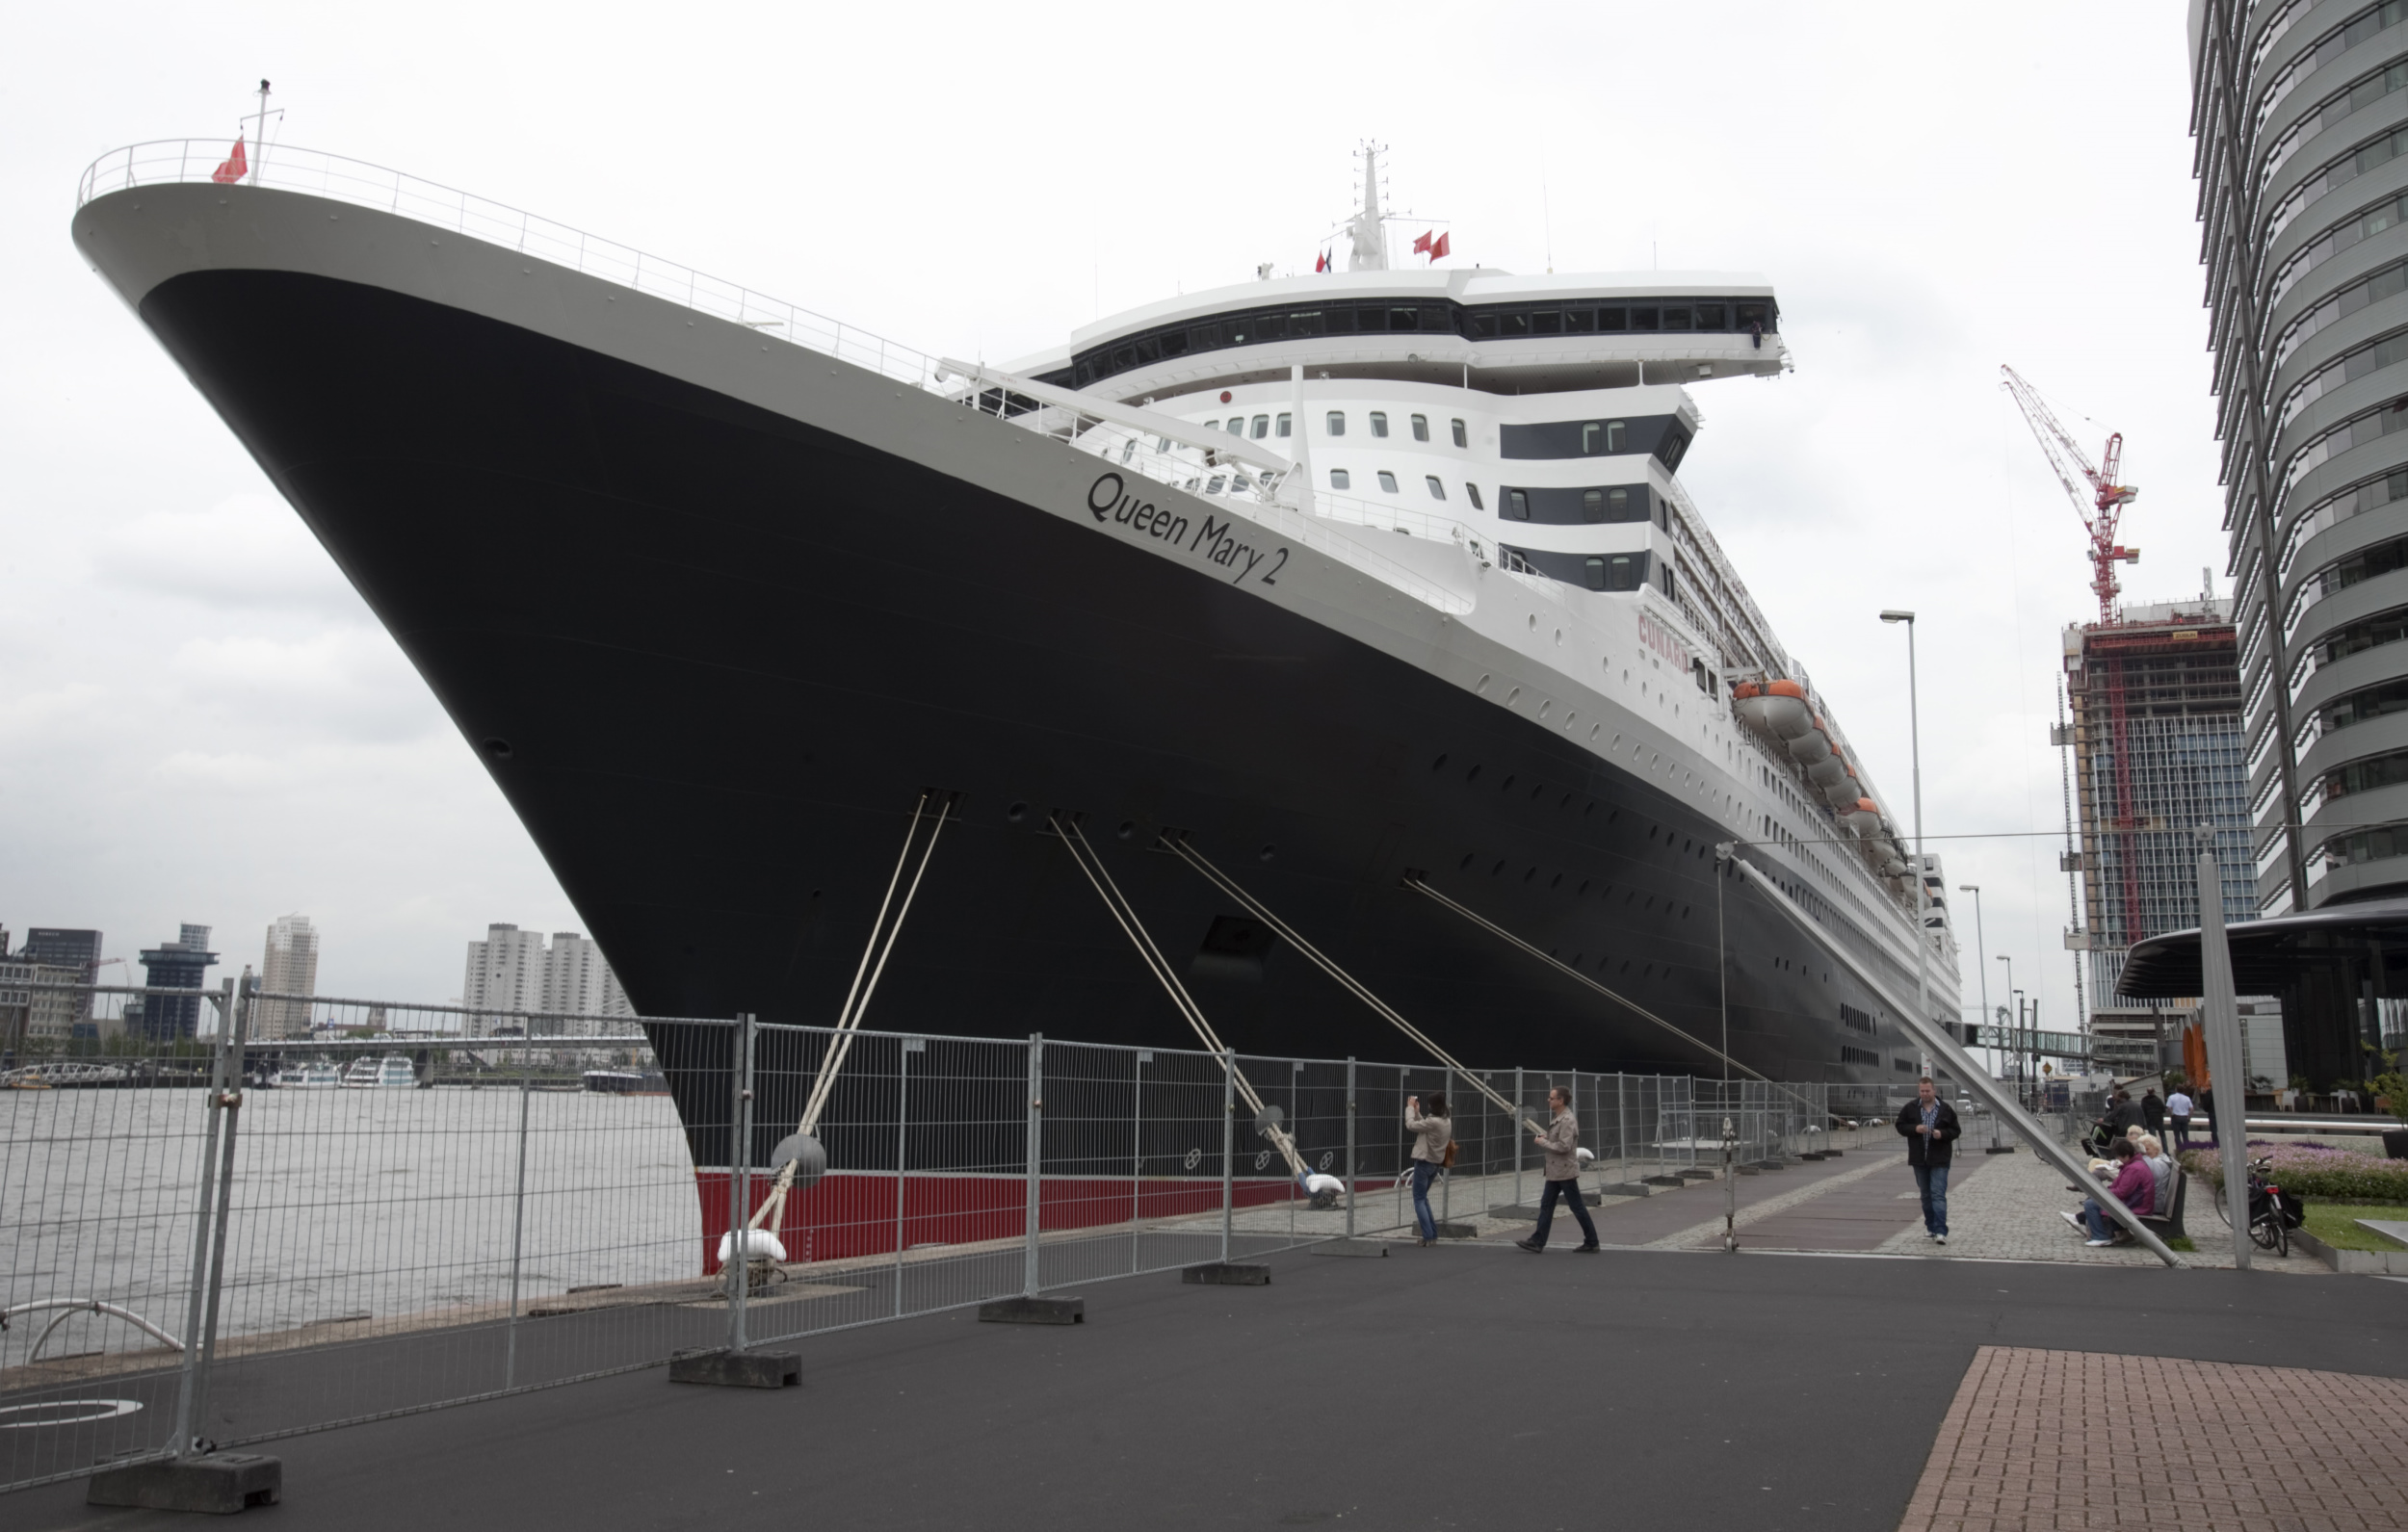 Havens Rotterdam Queen Mary 2